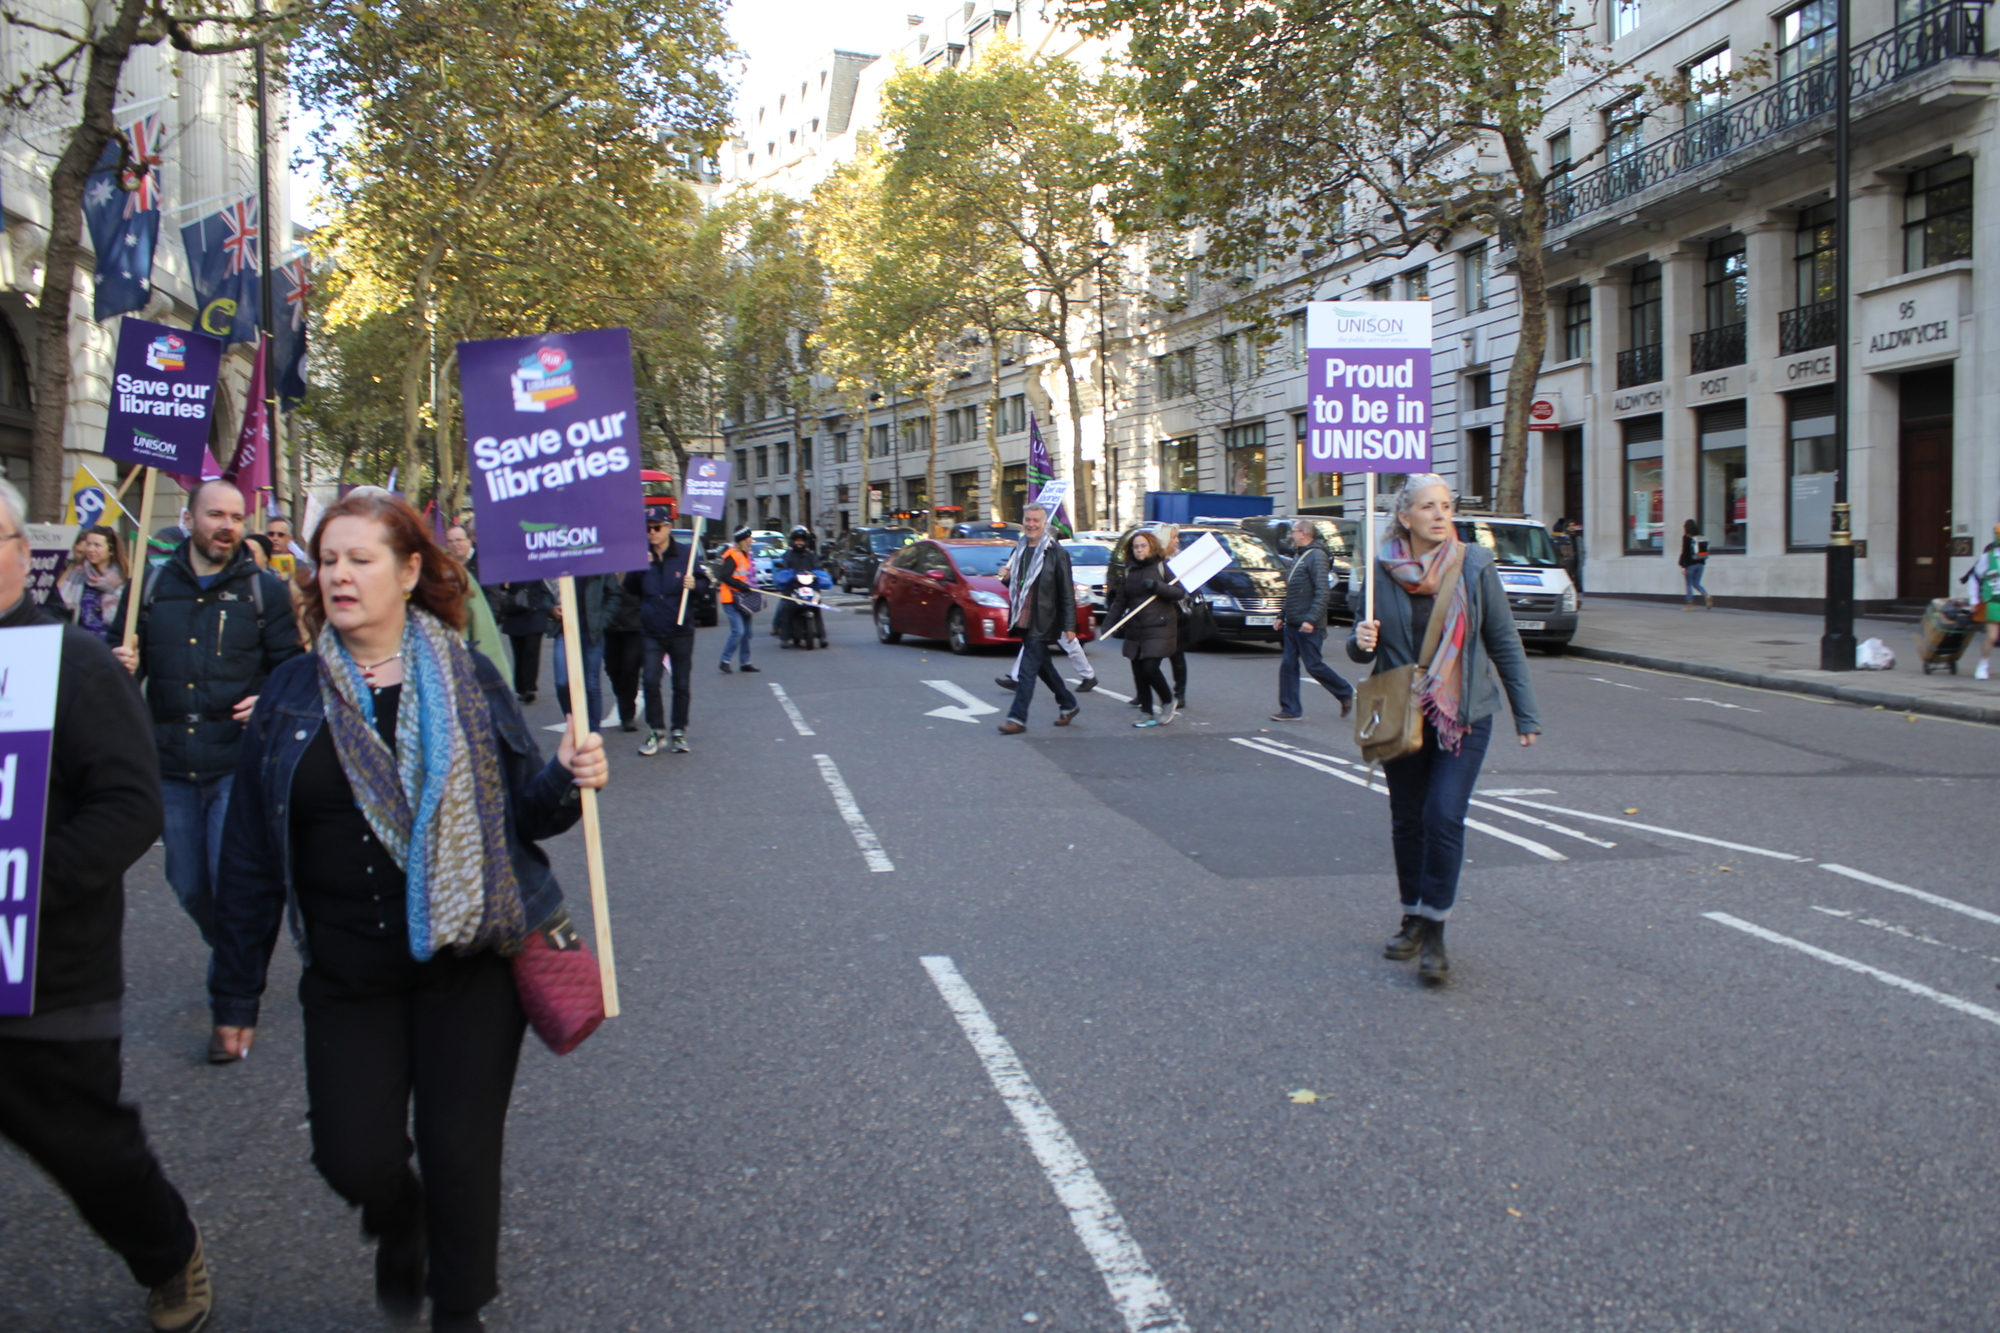 protesters in the road